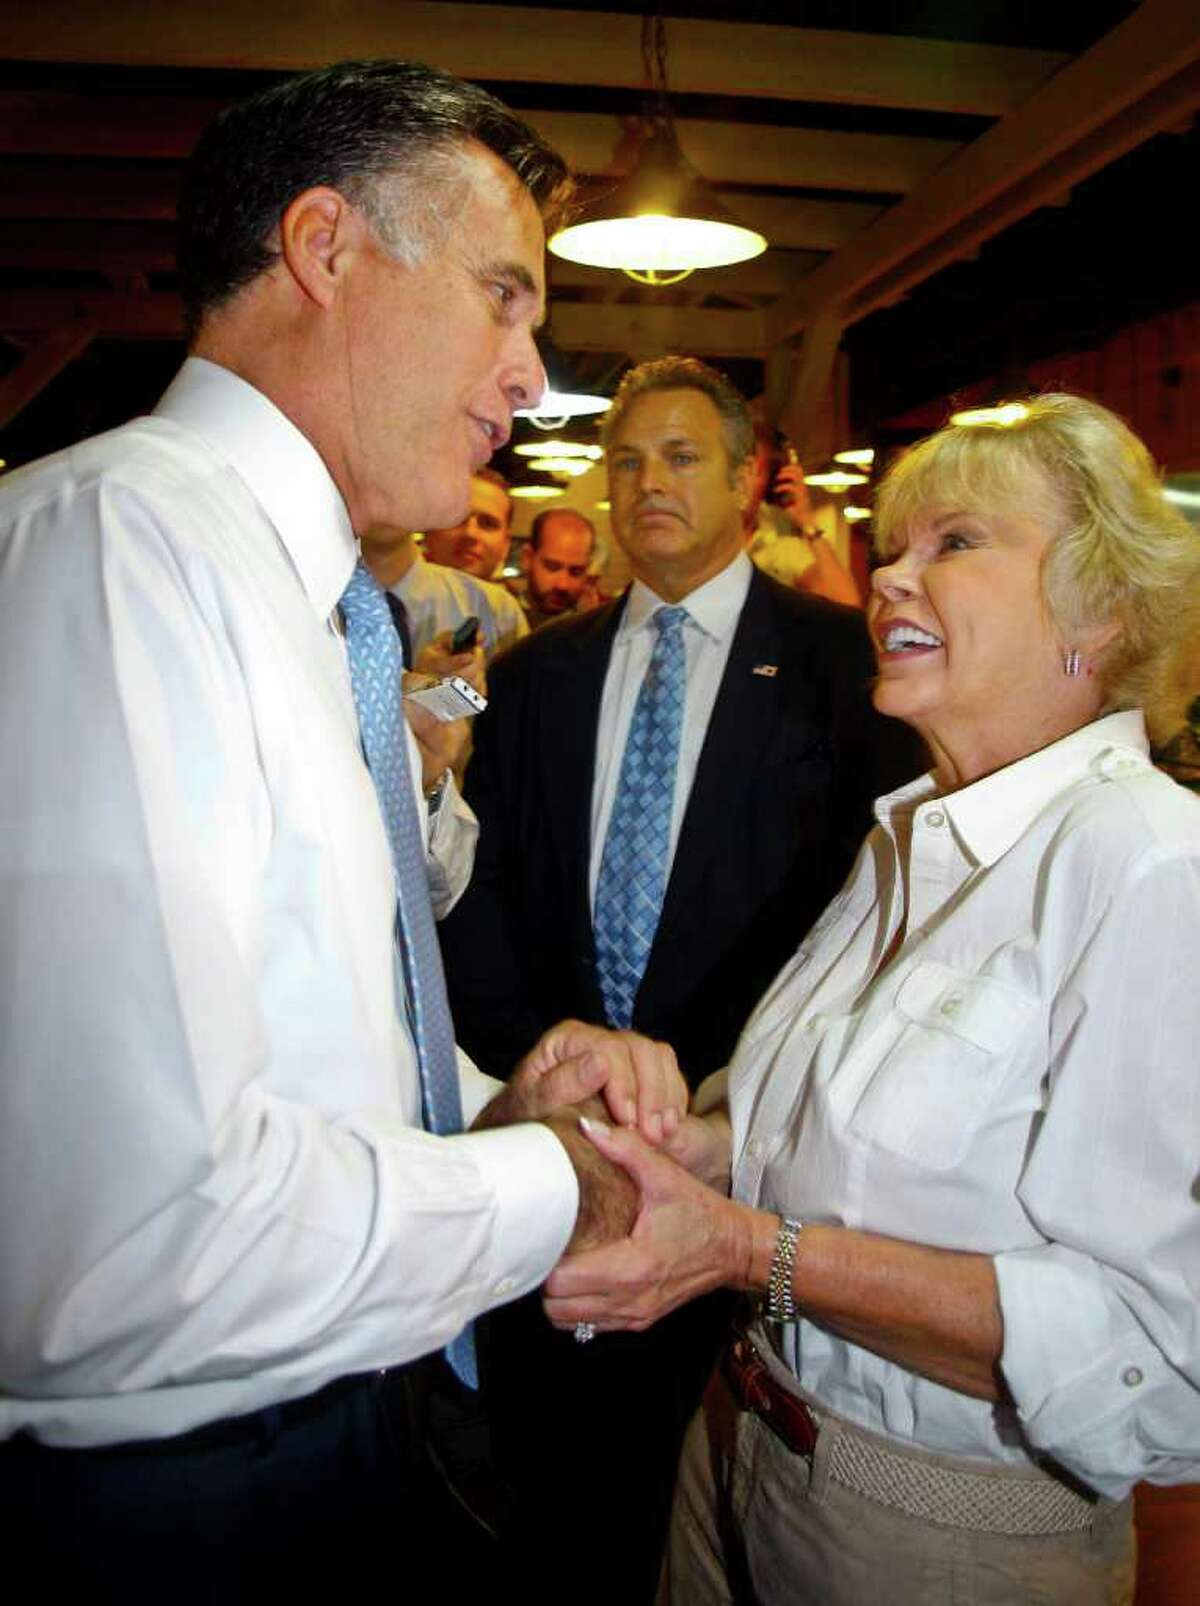 Republican presidential candidate former Massachusetts Gov. Mitt Romney, left, greets Sylvia Jordan during a lunch stop at Seminole Wind restaurant Wednesday, Oct. 5, 2011, in Tallahassee, Fla. Jordan told Romney to make sure he ate the okra at the restaurant's buffet, a comment based on his local radio interview earlier in the day where he had been asked his position on okra. (AP Photo/Phil Sears)